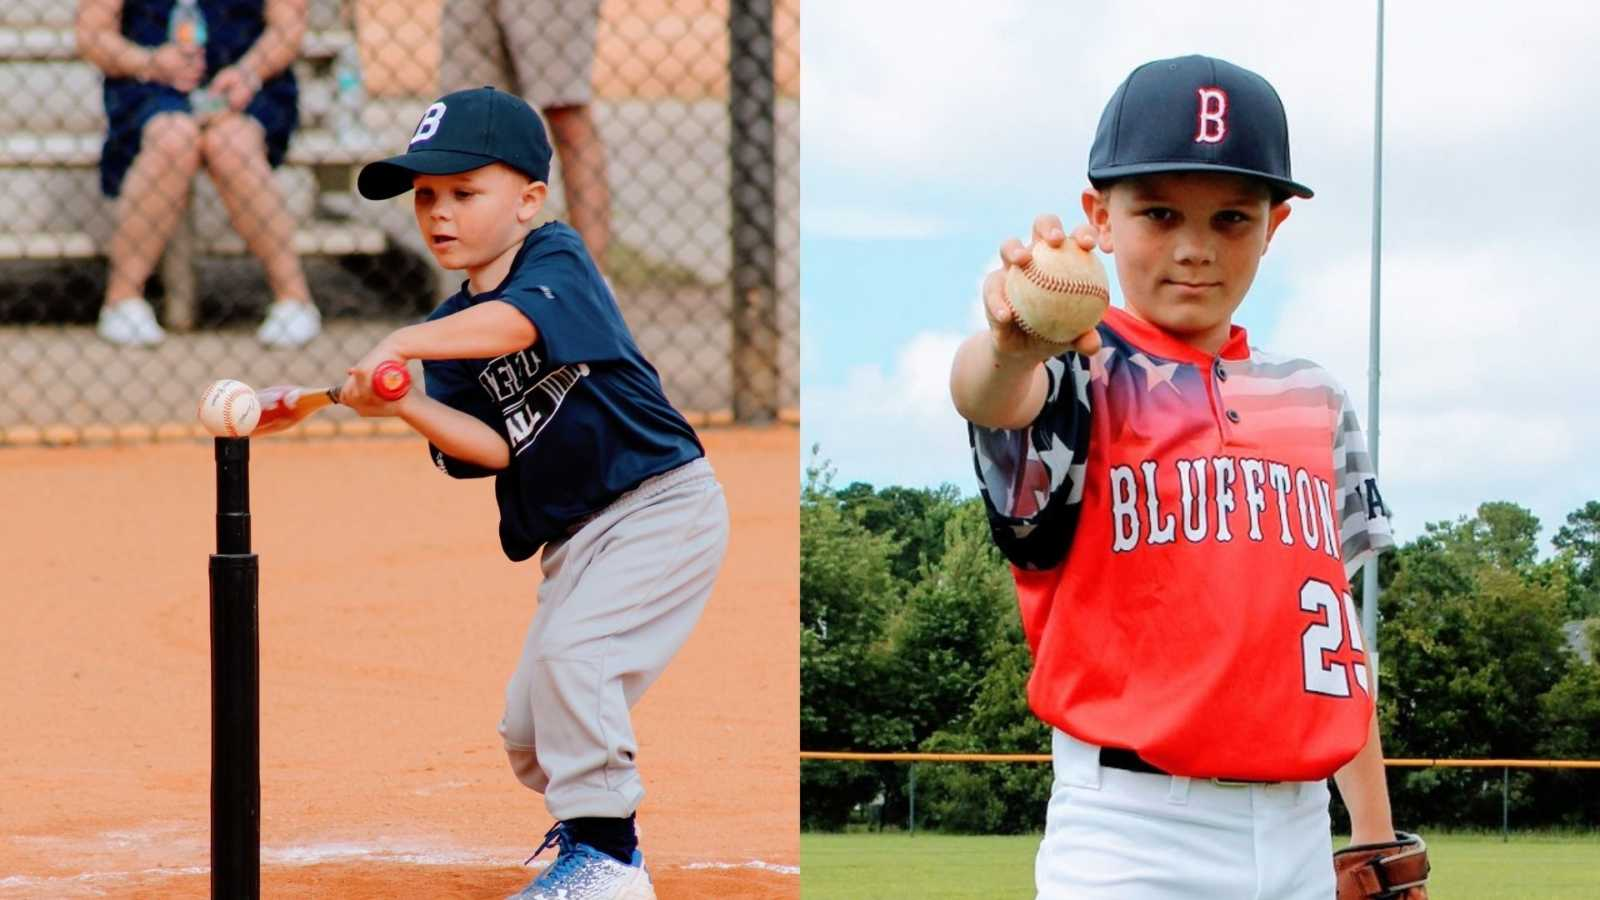 A boy swings at a baseball on a tee and a boy holds a baseball towards the camera